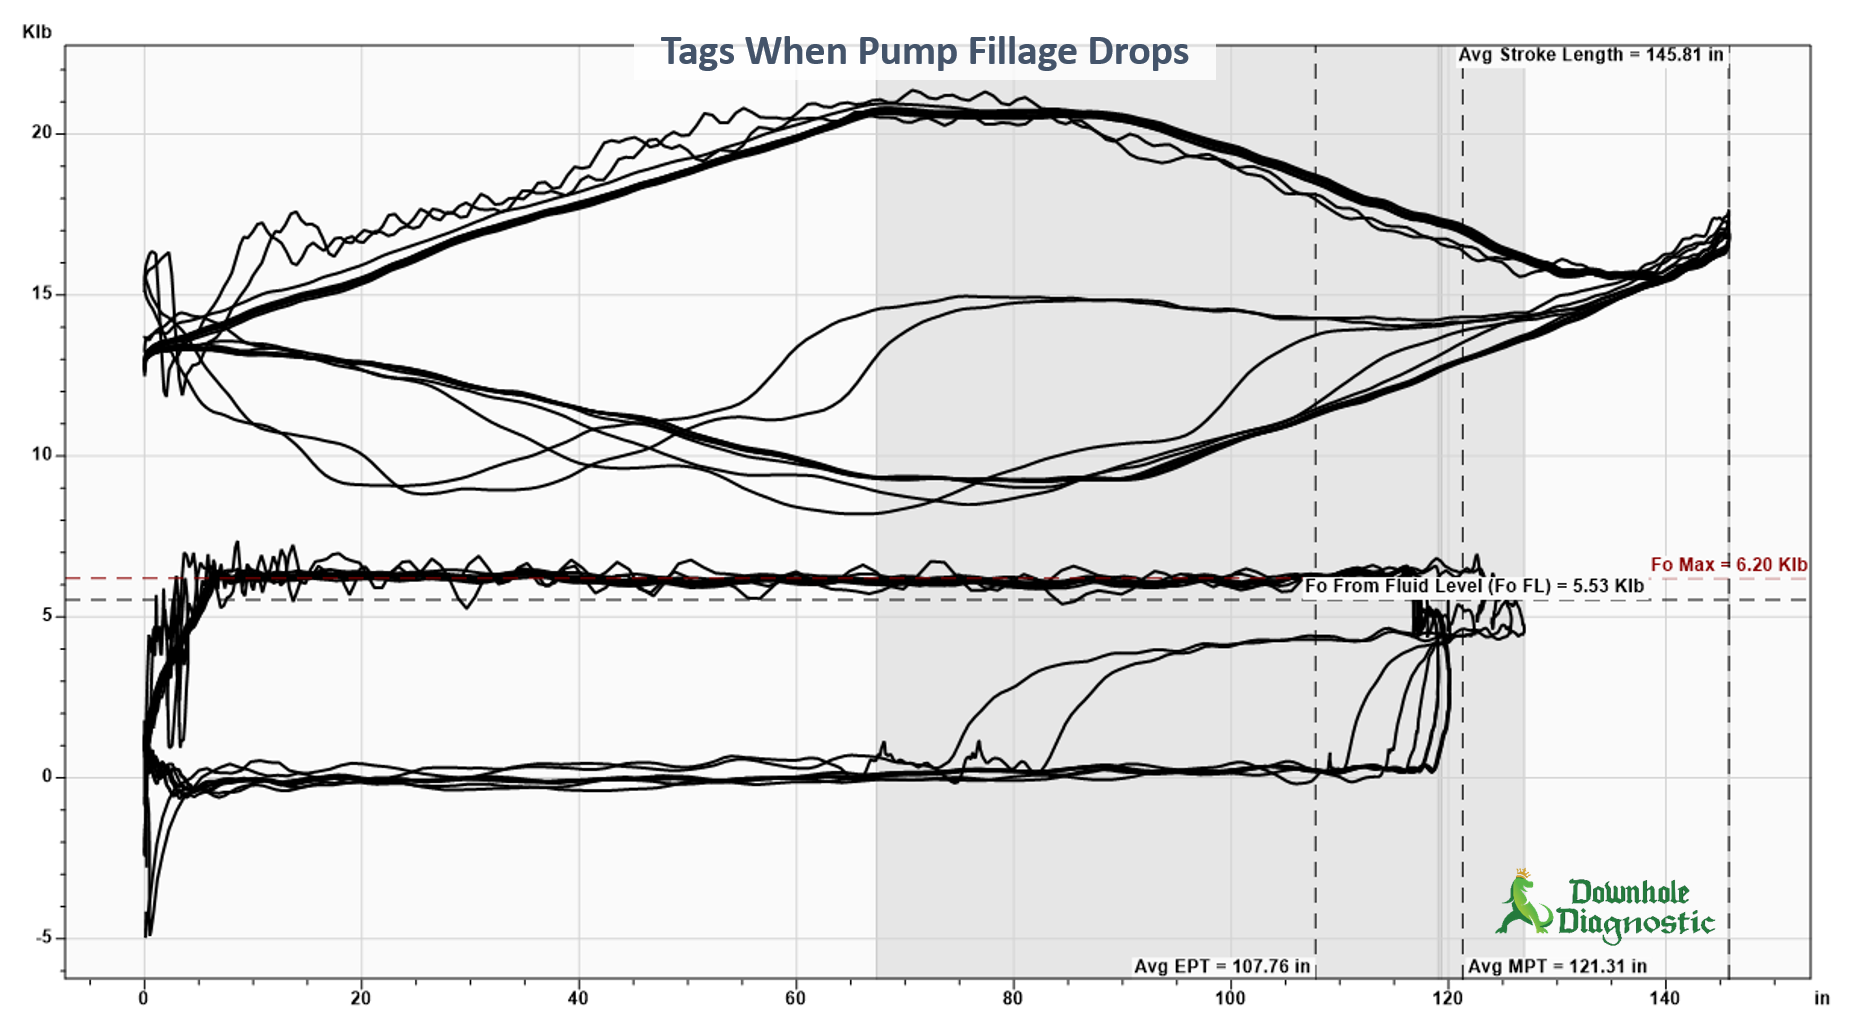 Pump Tag - Based on Fillage